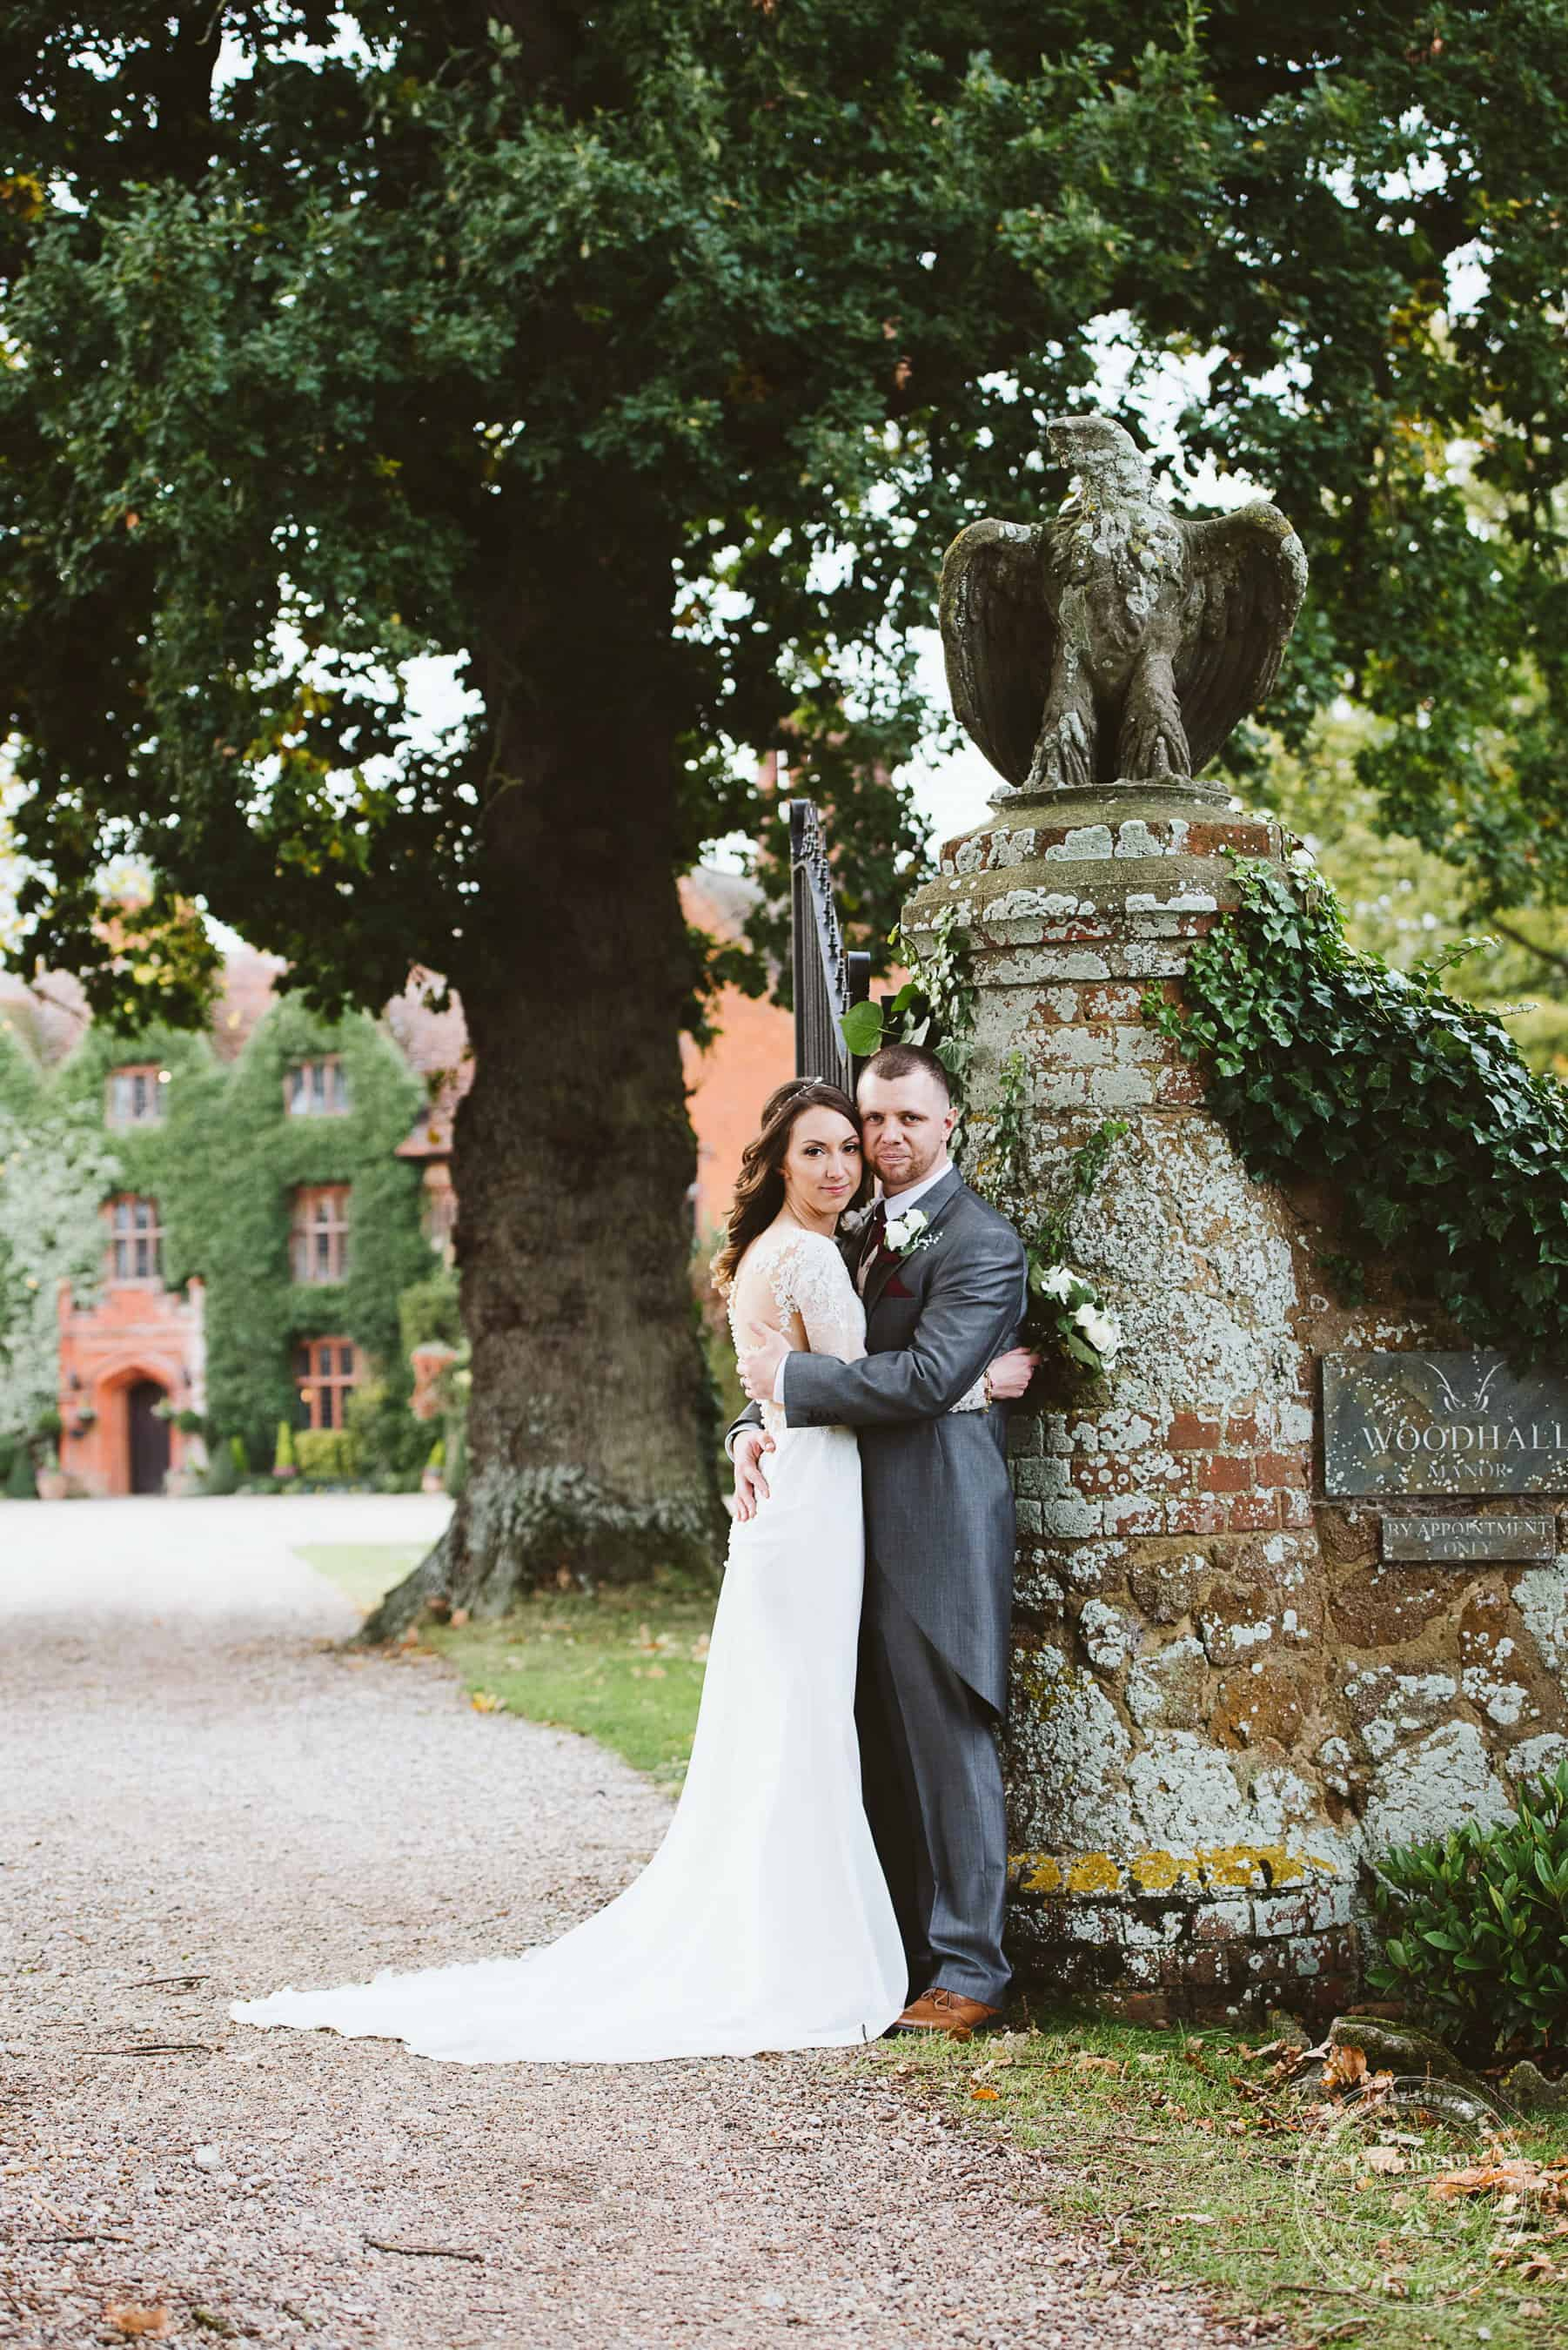 041118 Woodhall Manor Wedding Photography by Lavenham Photographic 095